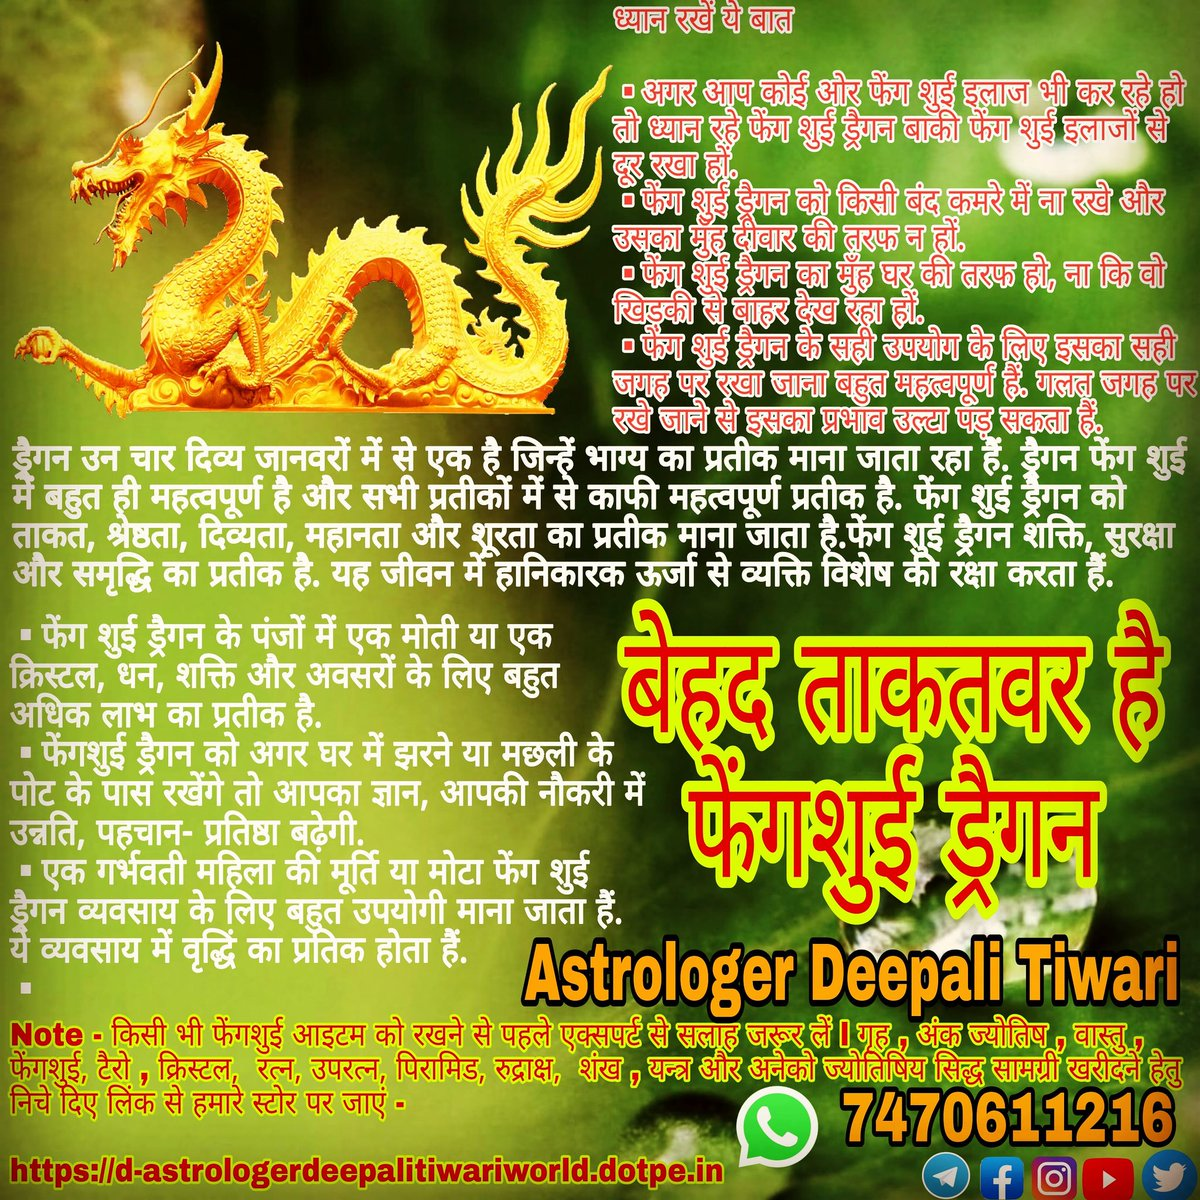 #astrologerdeepalitiwari #earthquake #AskTheExperts  #farmersrprotest #MotivationalQuotes #sundayvibes #VaccinationDrive #fengshuidragon #fengshui #vastutips #Numerology #tarotcardsreading #astrology #vedicjyotish #crystalastrology #palmistry #blackmagic #paranormal #facereading